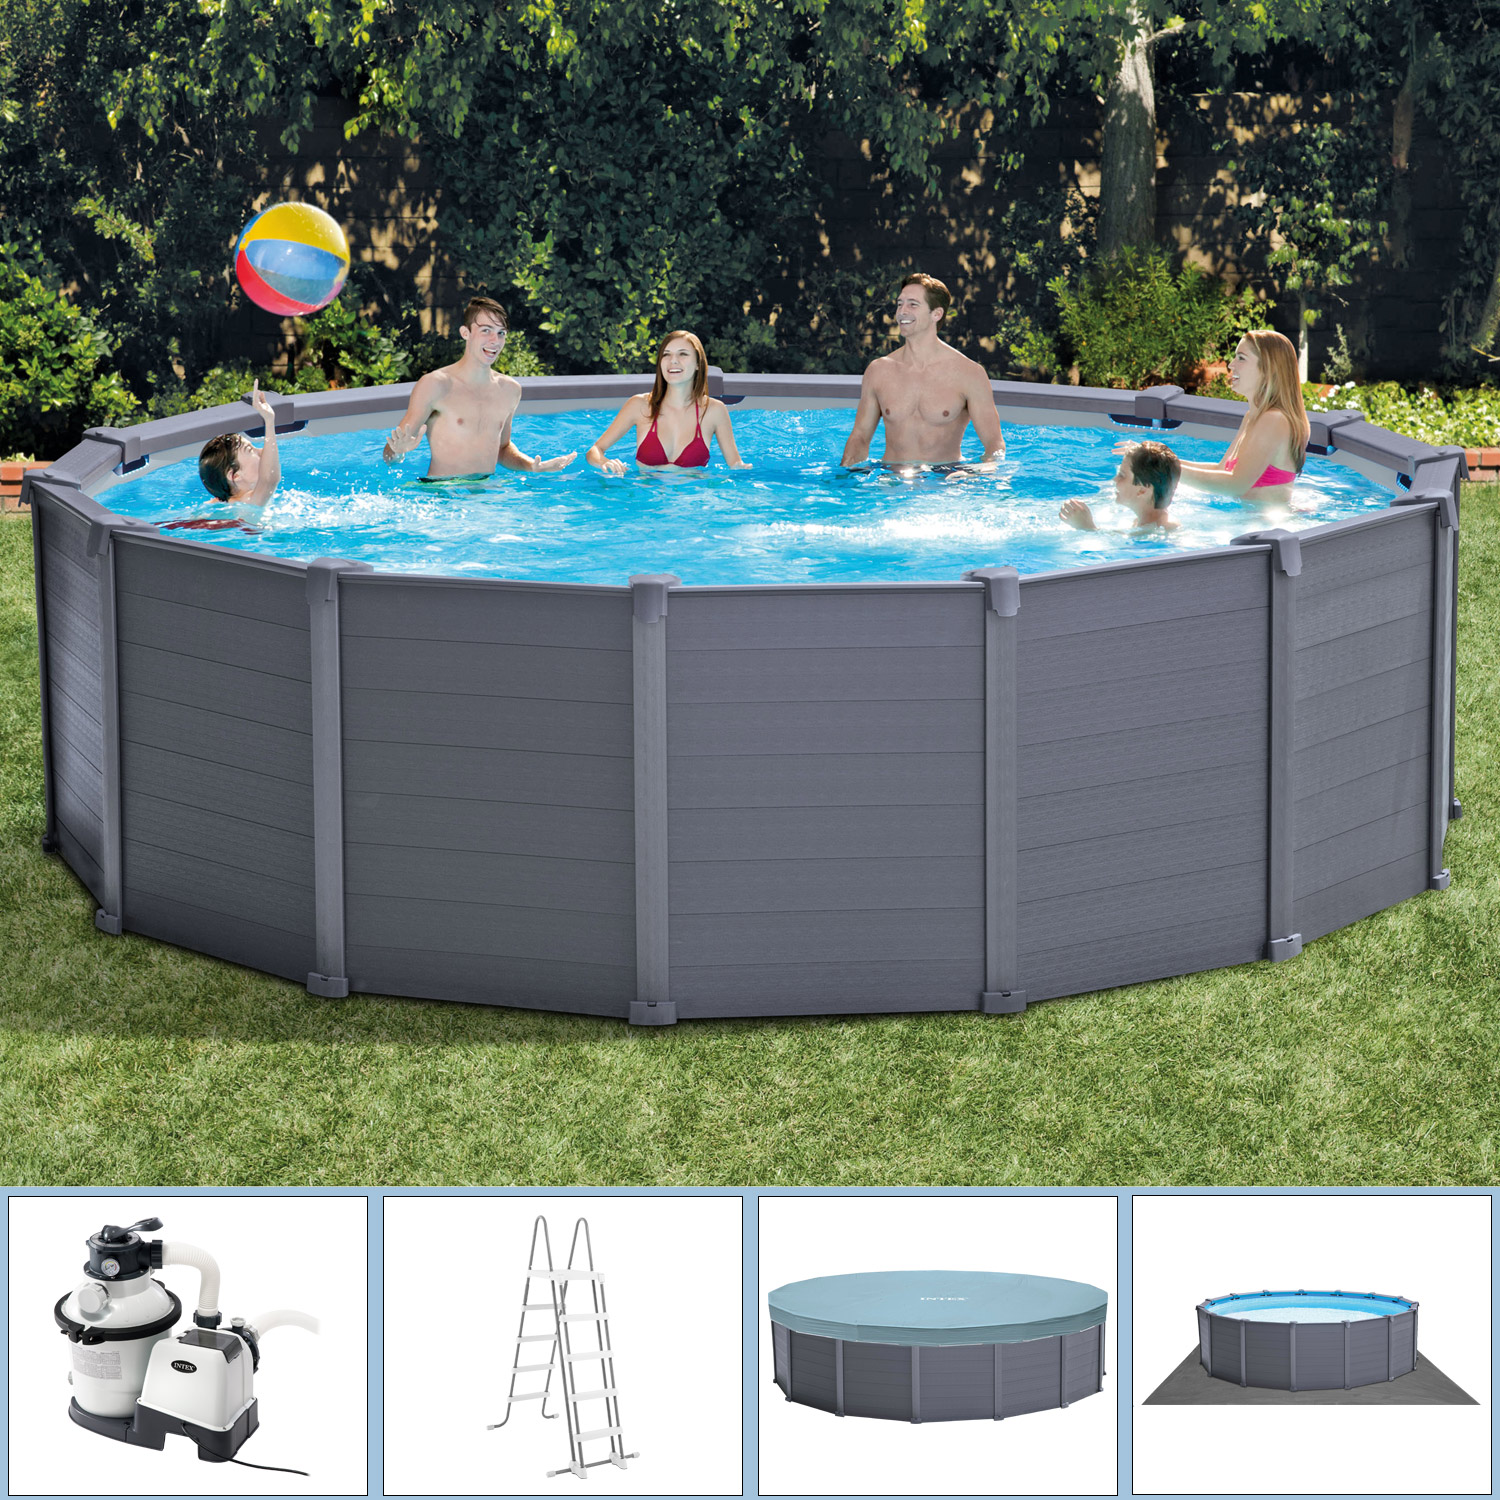 Sandfilteranlage Intex Pool Intex Ø 478 X 124 Cm Frame Pool Komplett Set Graphit Mit